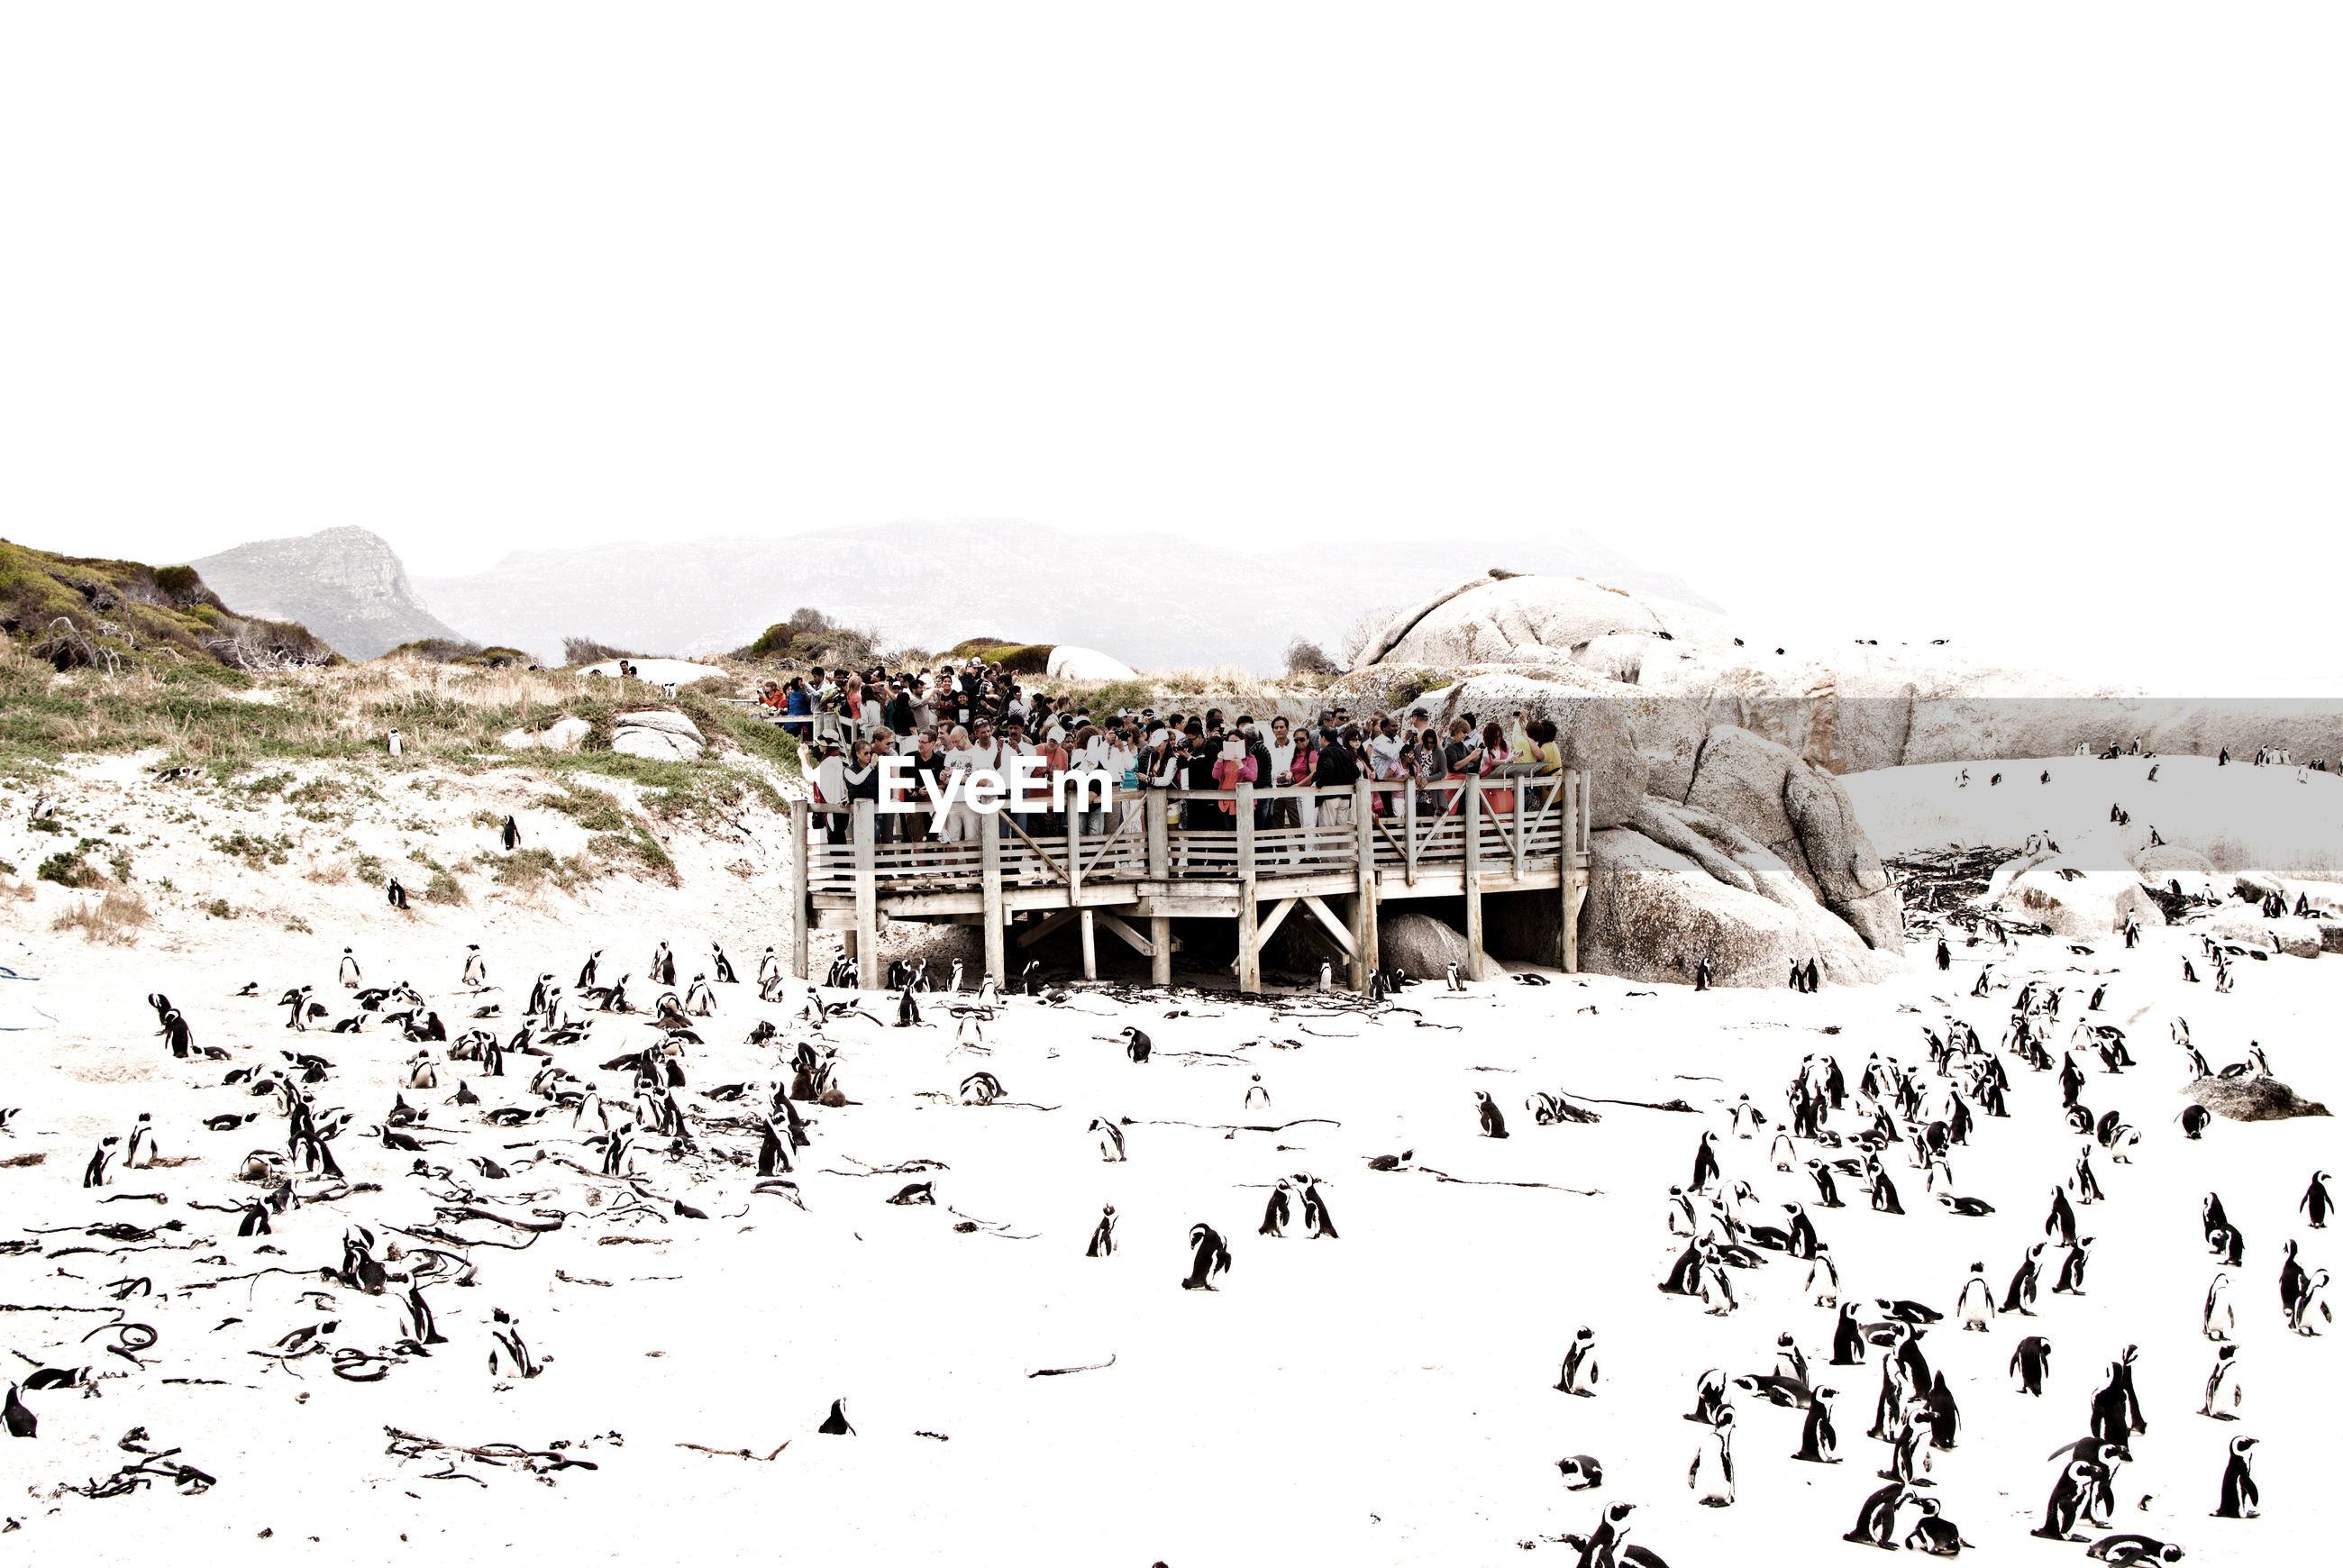 Penguins on snow covered field against clear sky